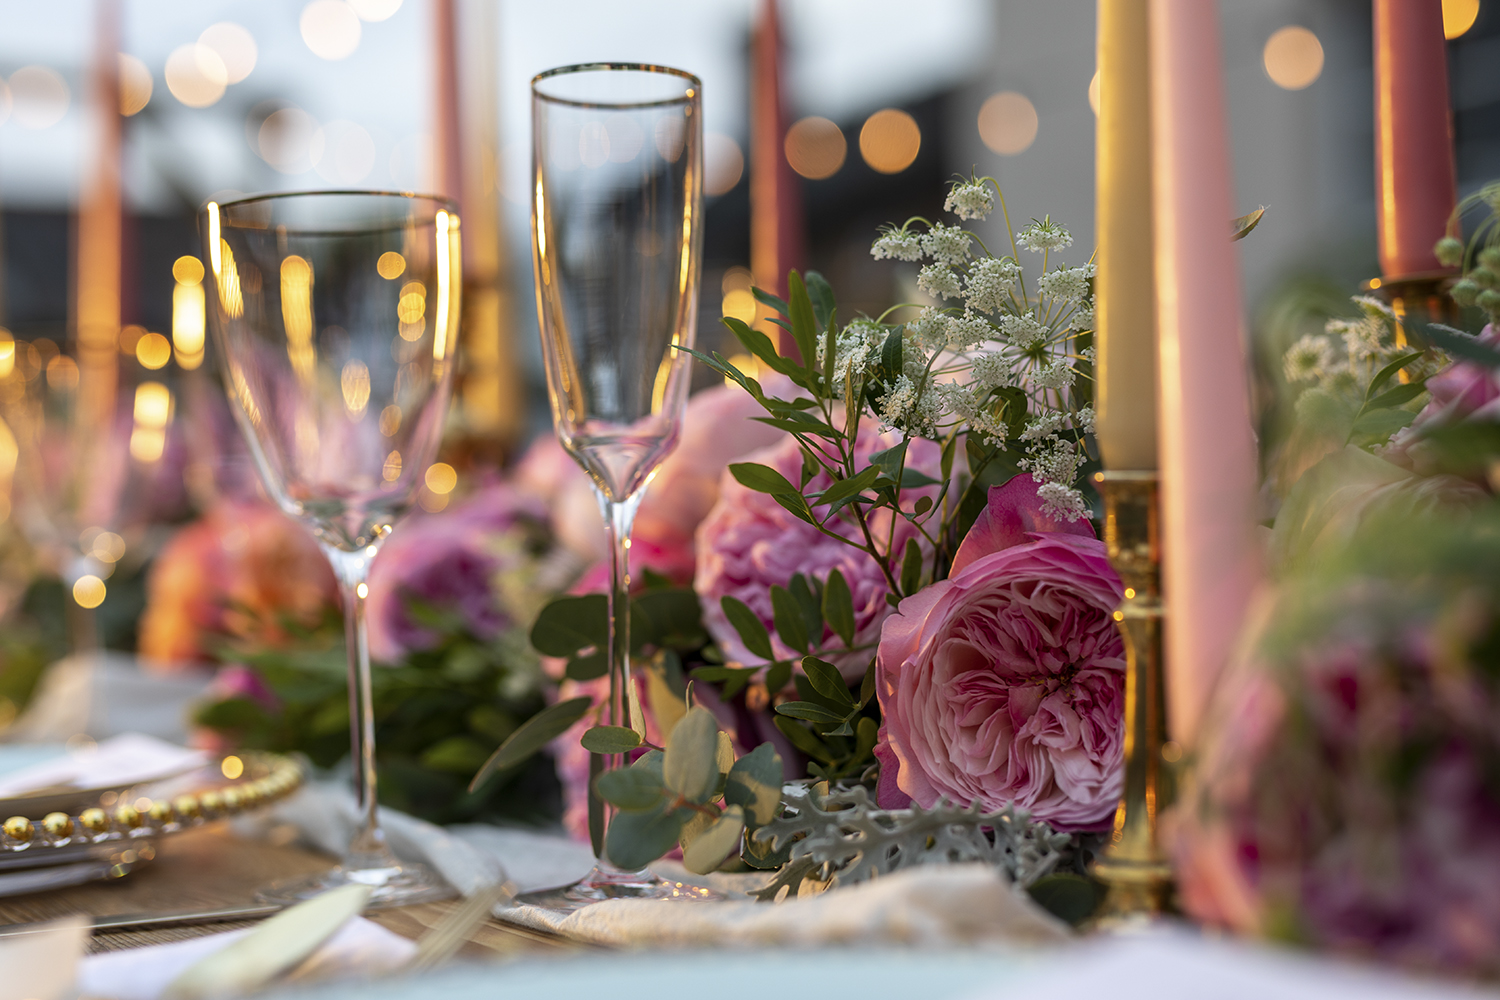 Constance roses banquet table decorations wedding